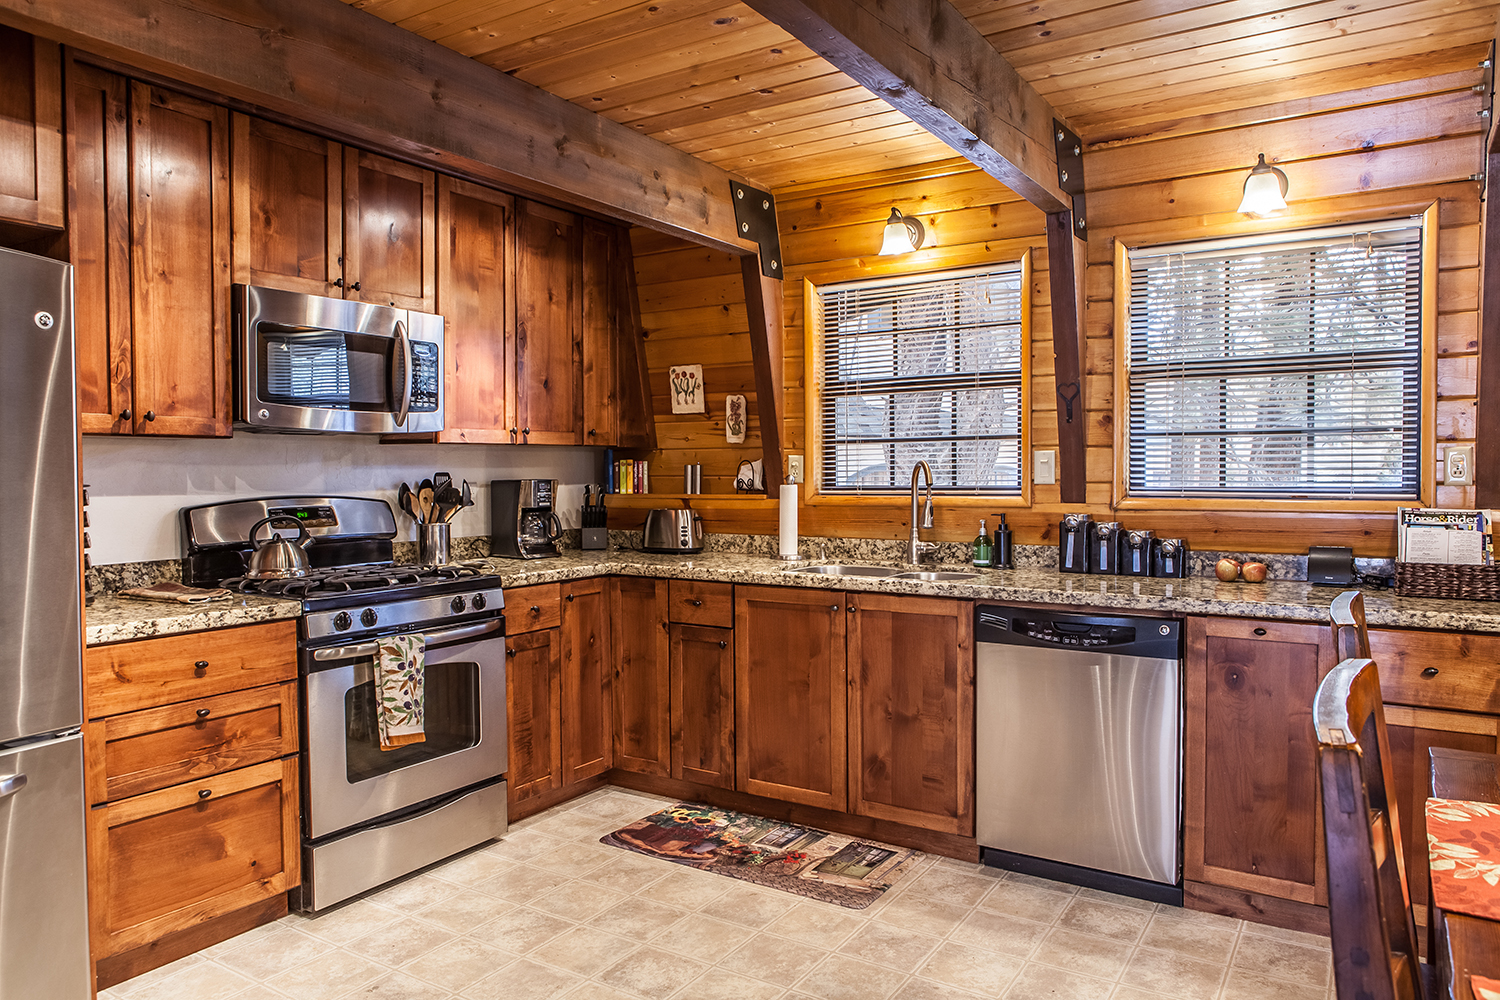 Planning a family vacation? This Big Bear Rental is perfect for family getaways!